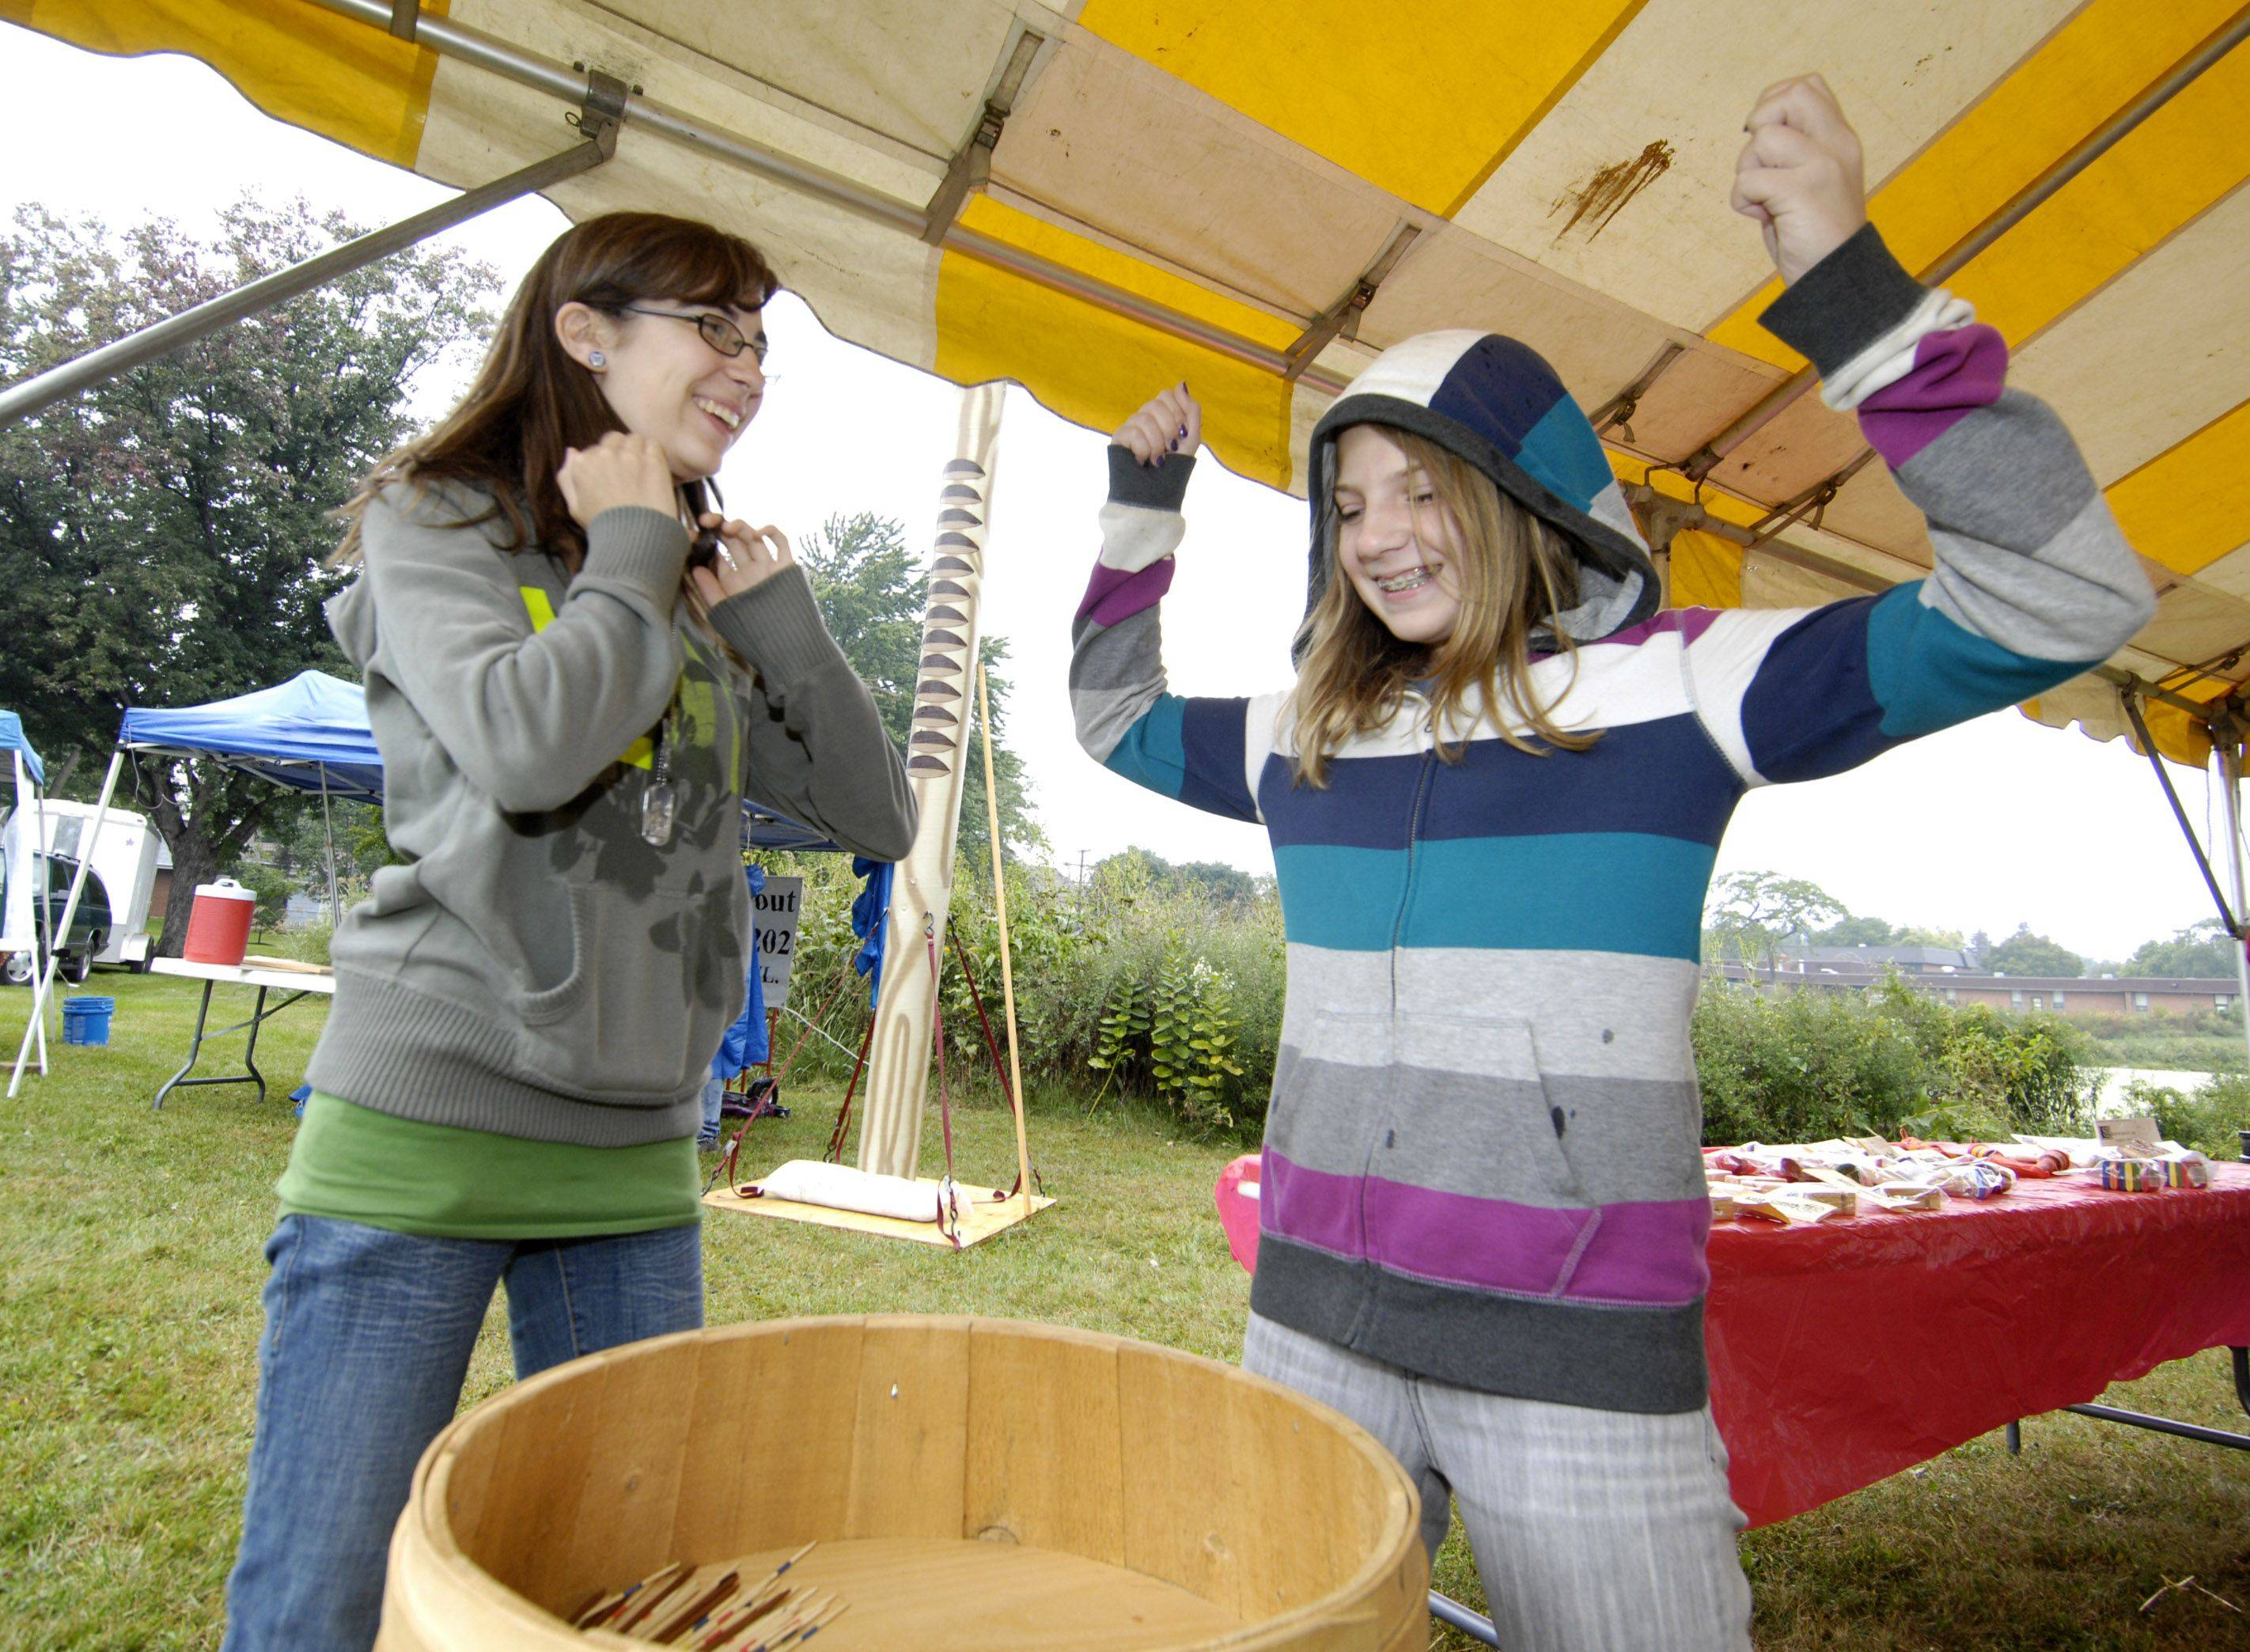 Zoe McNett, 15 and Alex Schneeberger, 12, of Lombard play jacks during Prairie Days at Terrace View Park in Lombard Sunday. The event was sponsored by the Lombard Park District and the Lombard Garden Club.